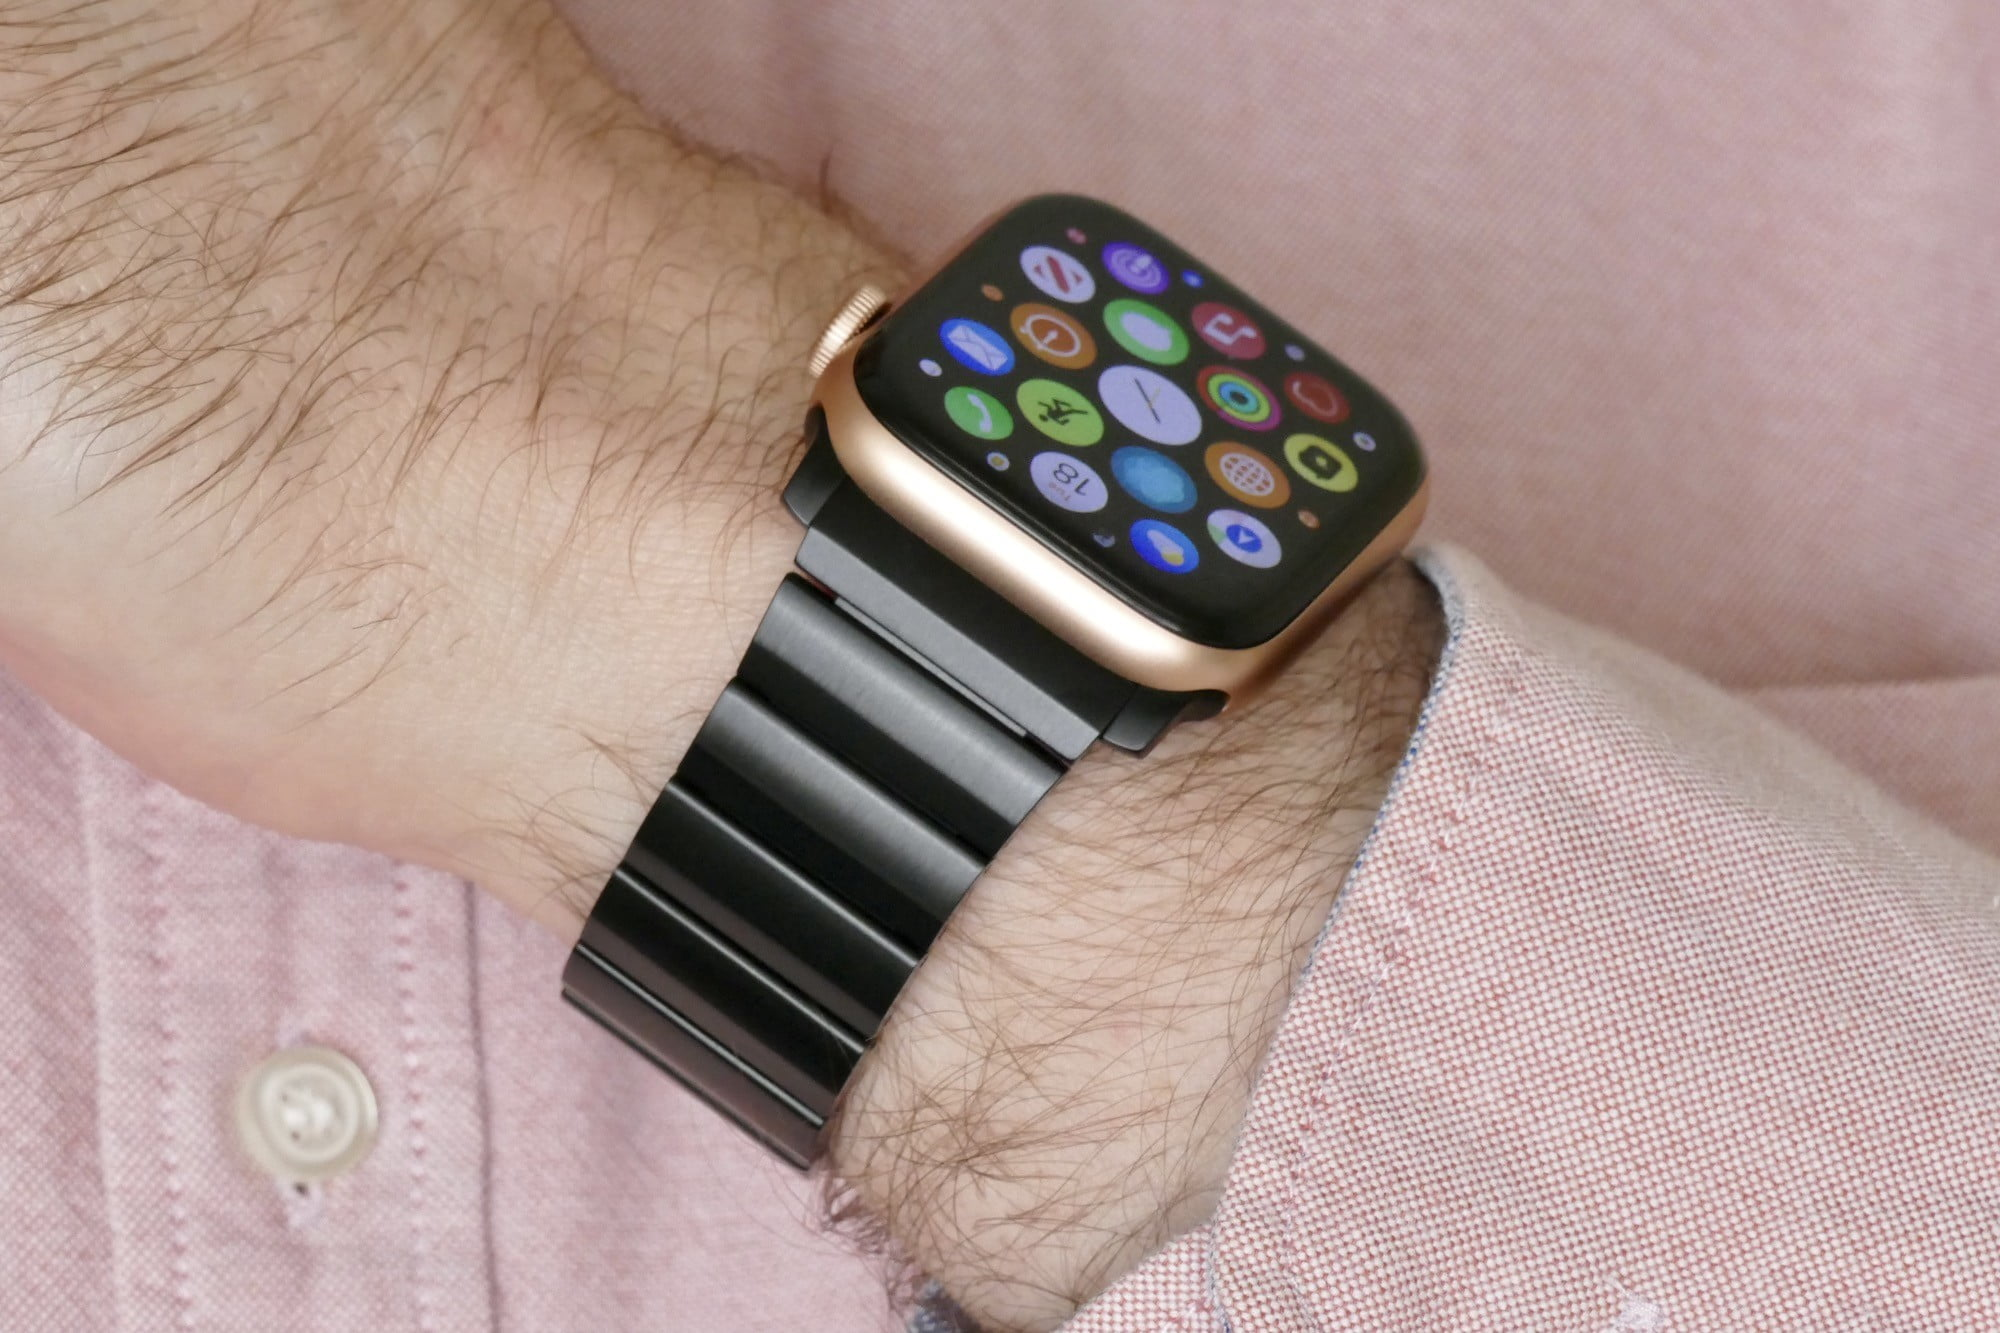 nomad titanium steel band apple watch hands on photos price release date se gold wrist side